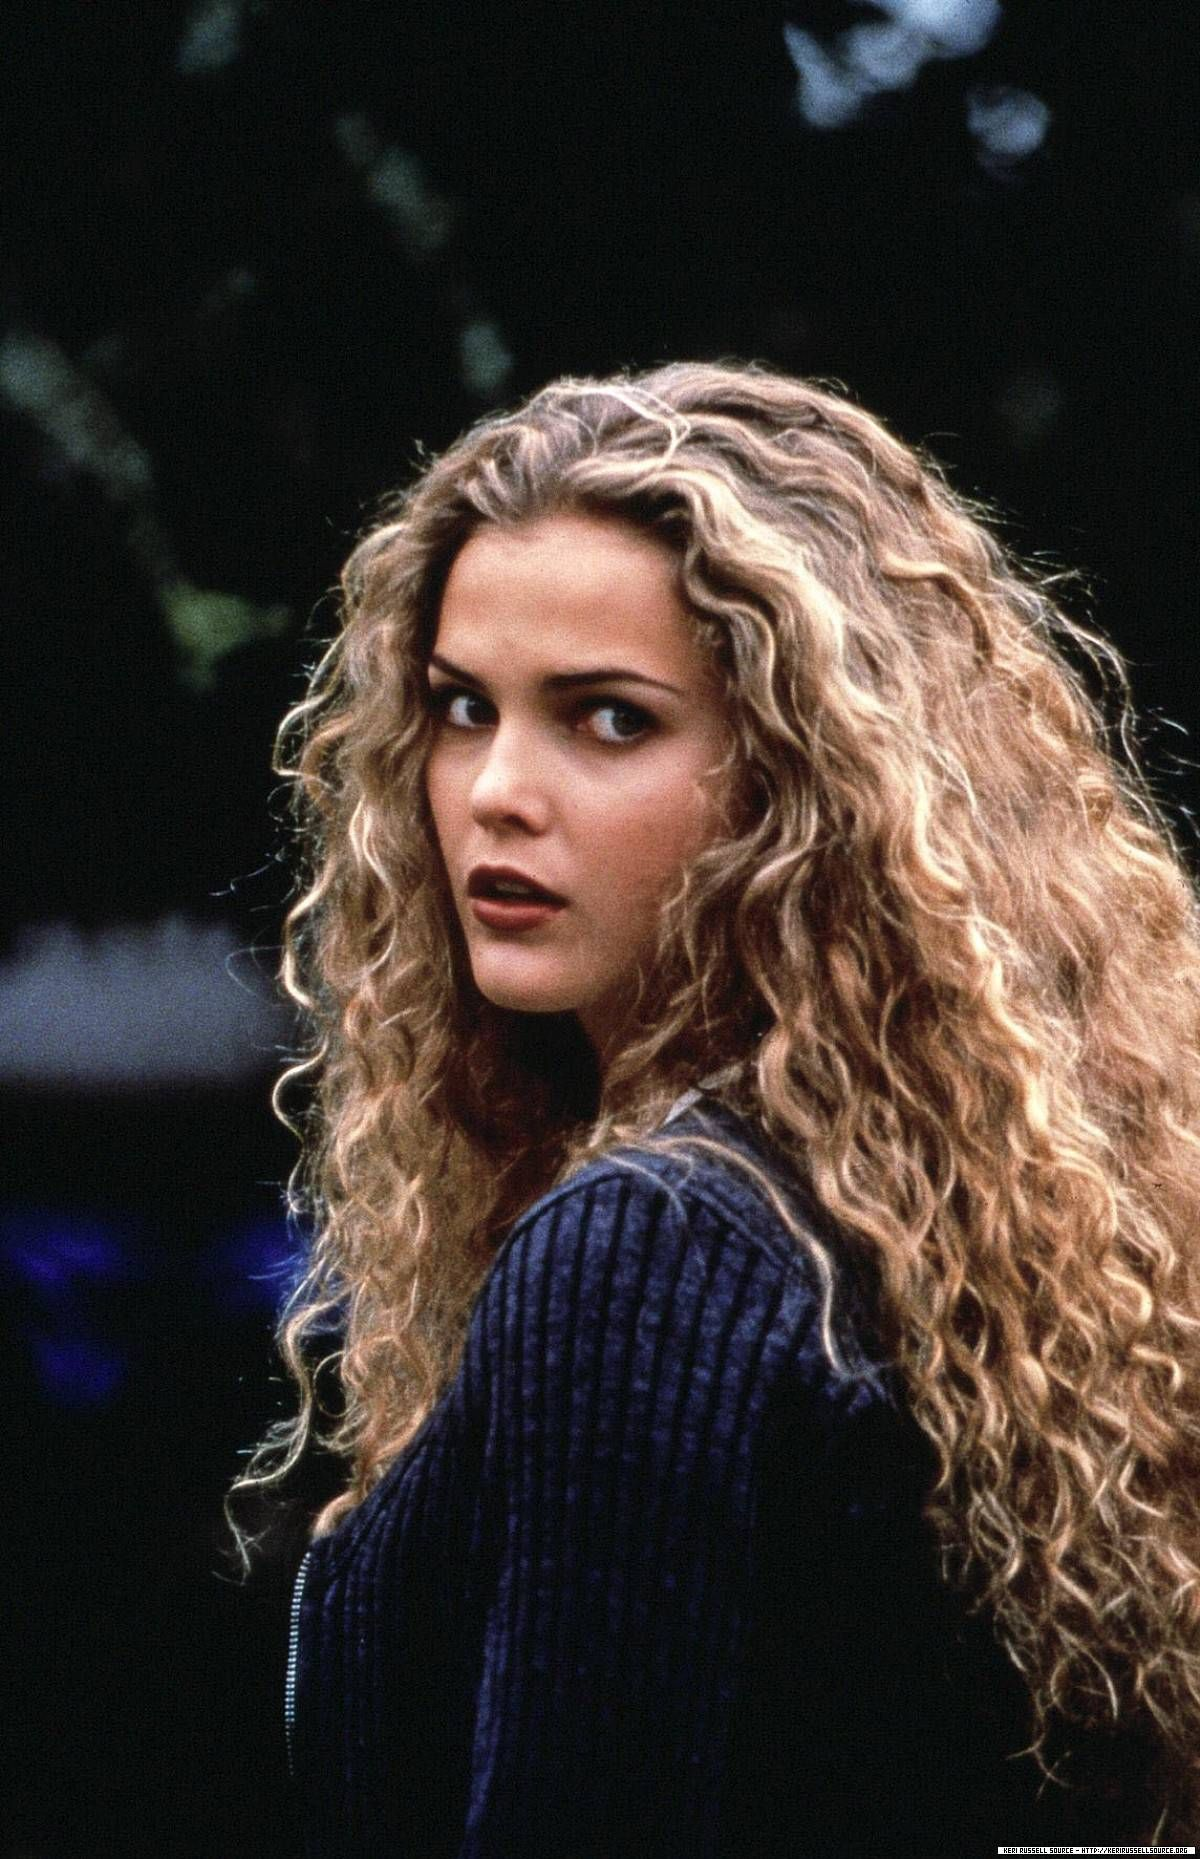 Young Keri Russell 1200 1859 Hair Curls Blonde Curly Hair Natural Curls Hairstyles Blonde Curls